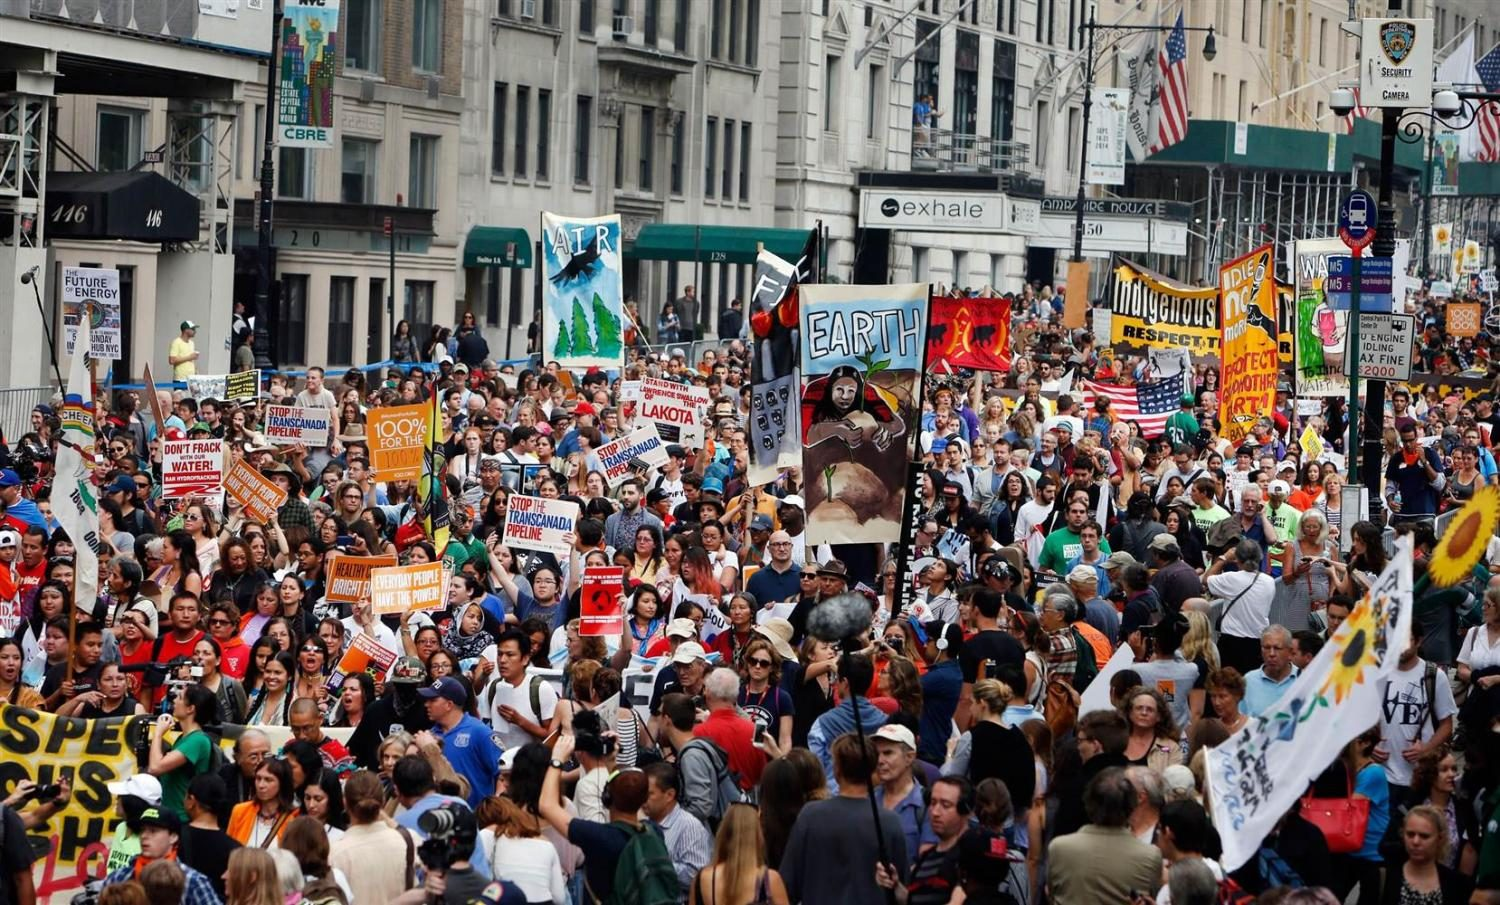 Thousands+March+for+Climate+in+Washington+D.C.